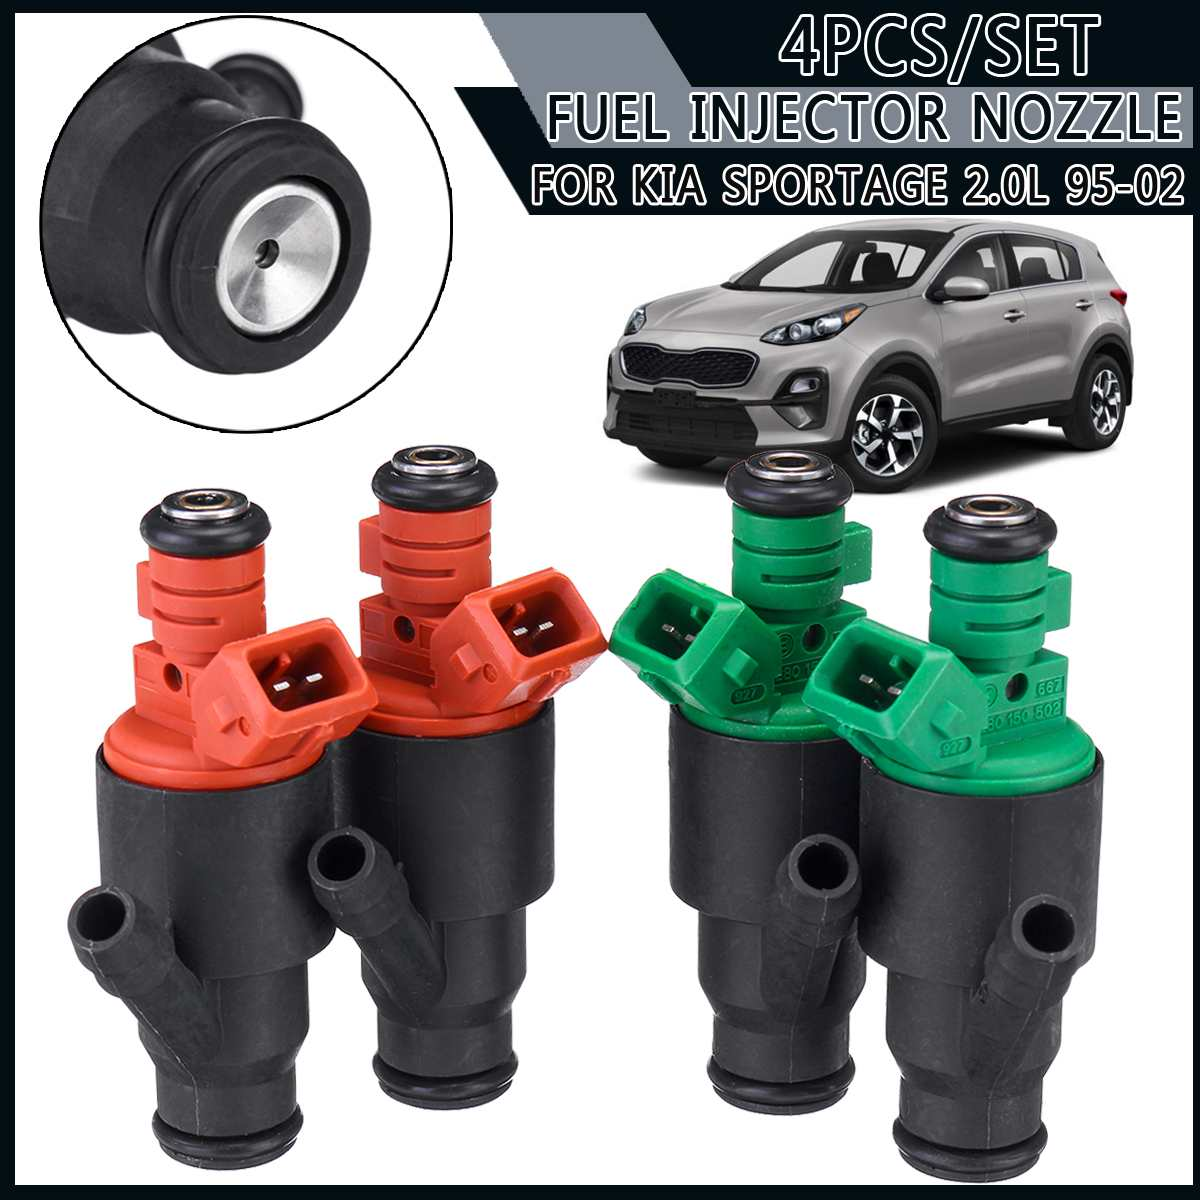 4 pieces Fuel Injector 95-02 For Kia Sportage 2.<font><b>0</b></font> <font><b>0</b></font> 280 <font><b>150</b></font> 504 <font><b>0</b></font> 280 <font><b>150</b></font> 502 two green 0280150502 and two orange 0280150504 image